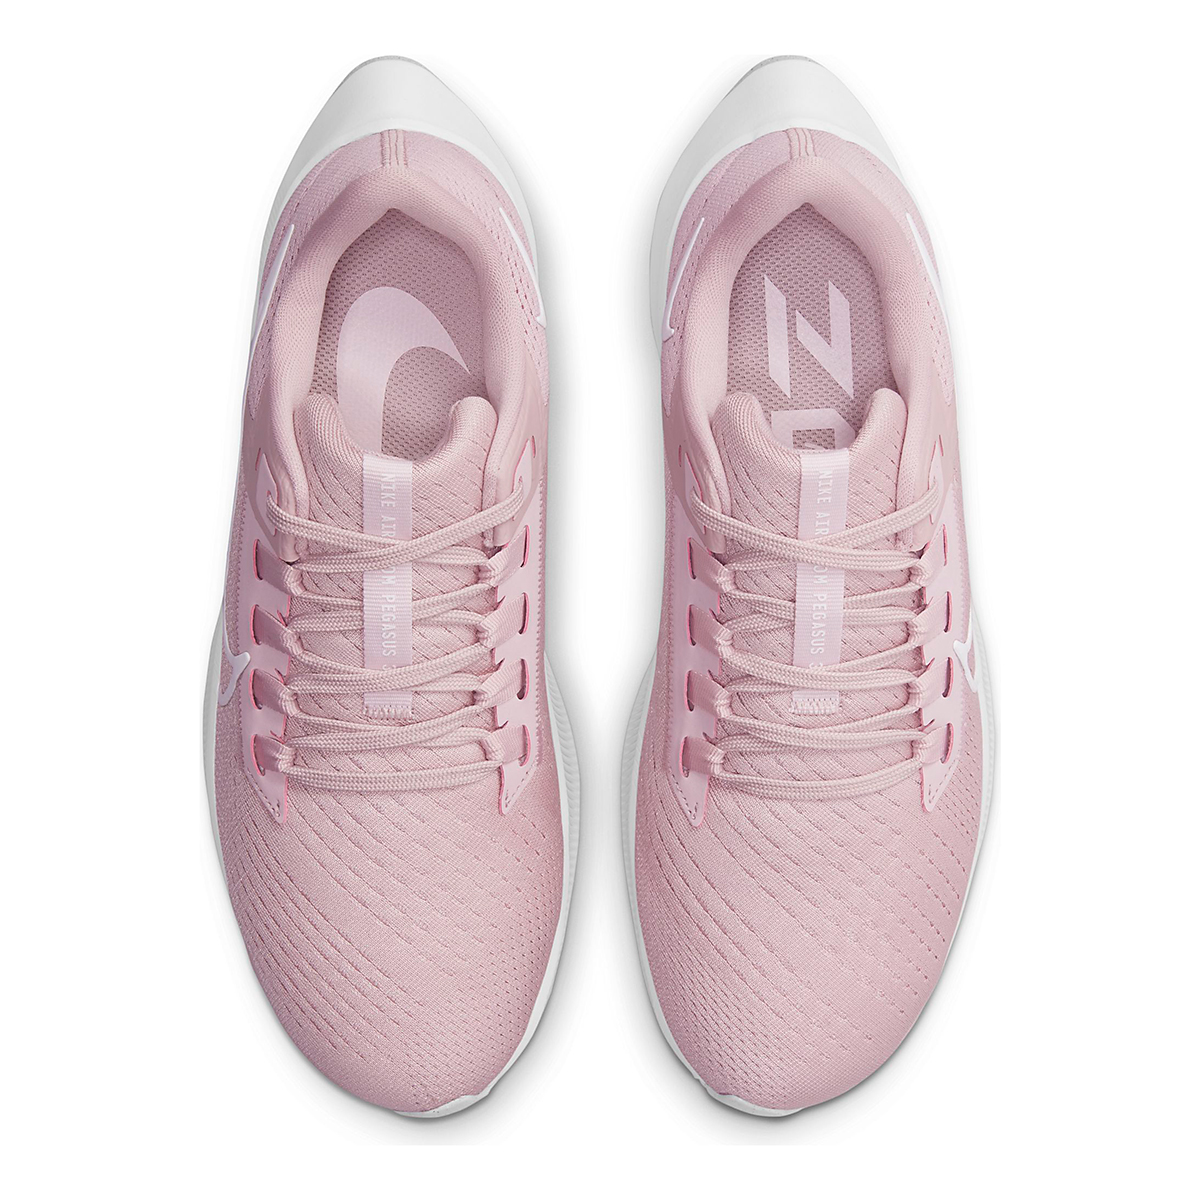 Women's Nike Air Zoom Pegasus 38 Running Shoe - Color: Champagne/White/Arctic Pink - Size: 5 - Width: Regular, Champagne/White/Arctic Pink, large, image 6